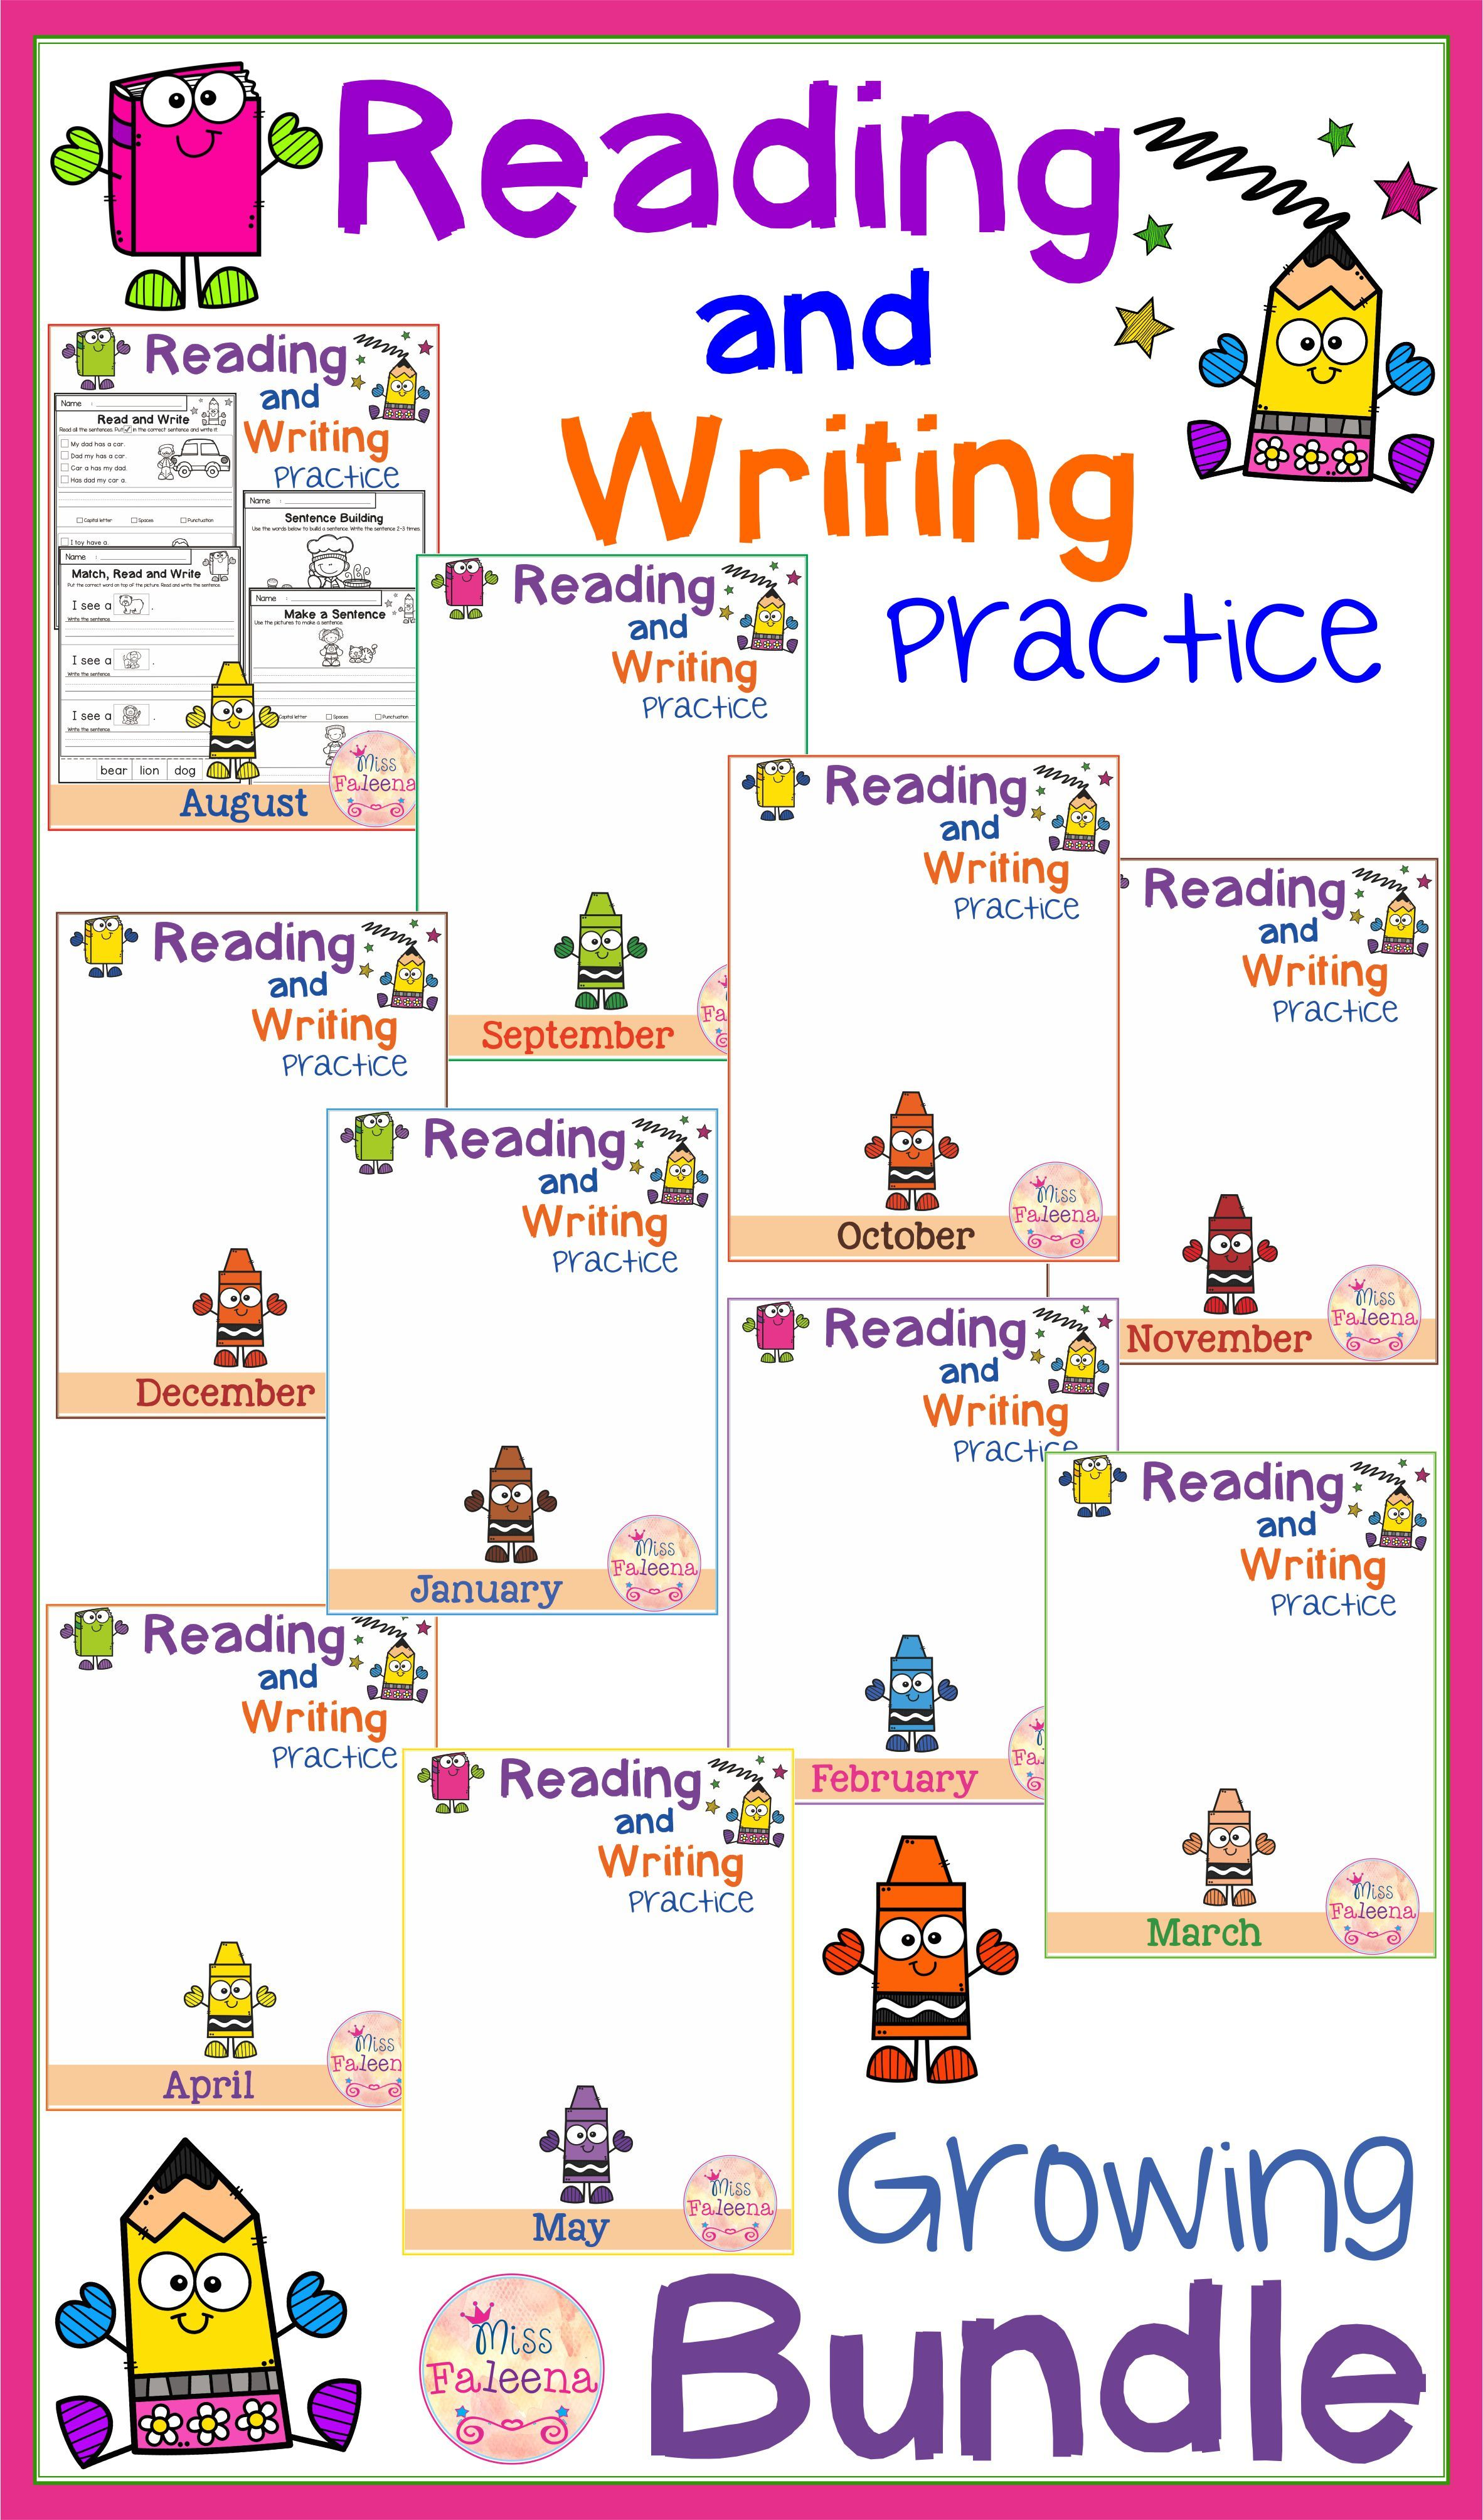 Reading And Writing Practice Bundle With Images